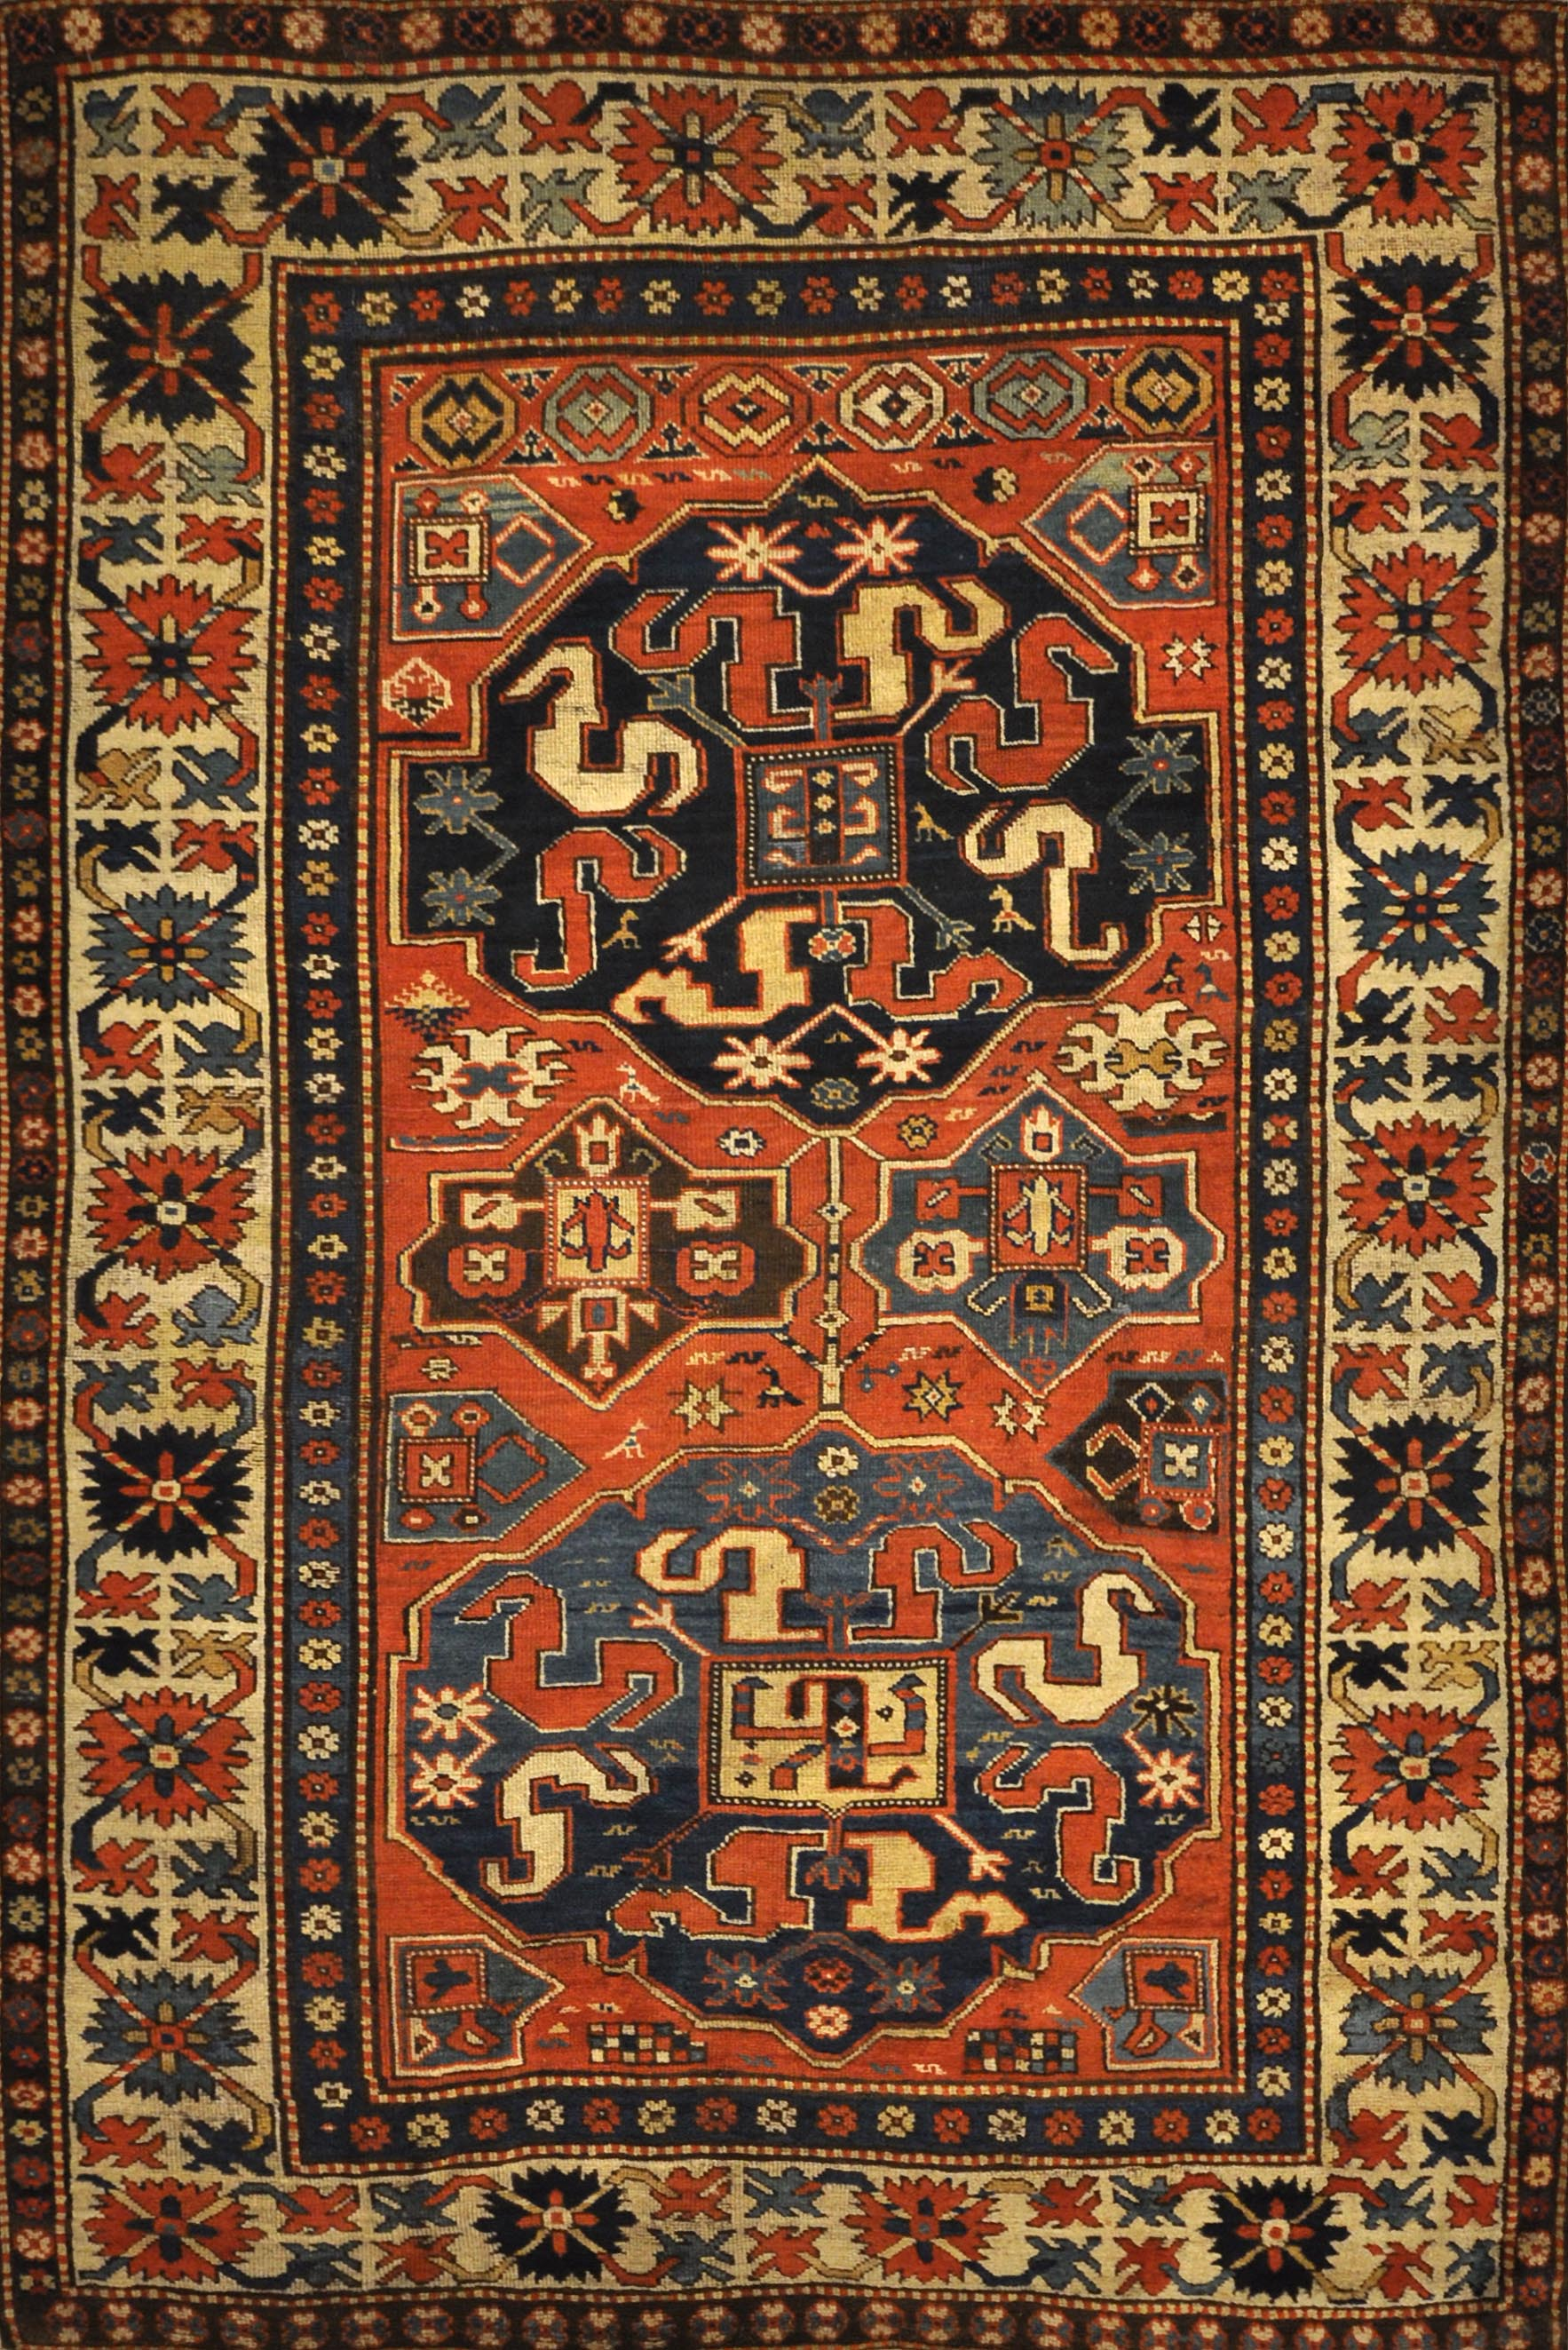 Antique Rare Cloudband Caucasian Chondzoresk Rug. A piece of genuine authentic antique woven carpet art sold by Santa Barbara Design Center Rugs More.